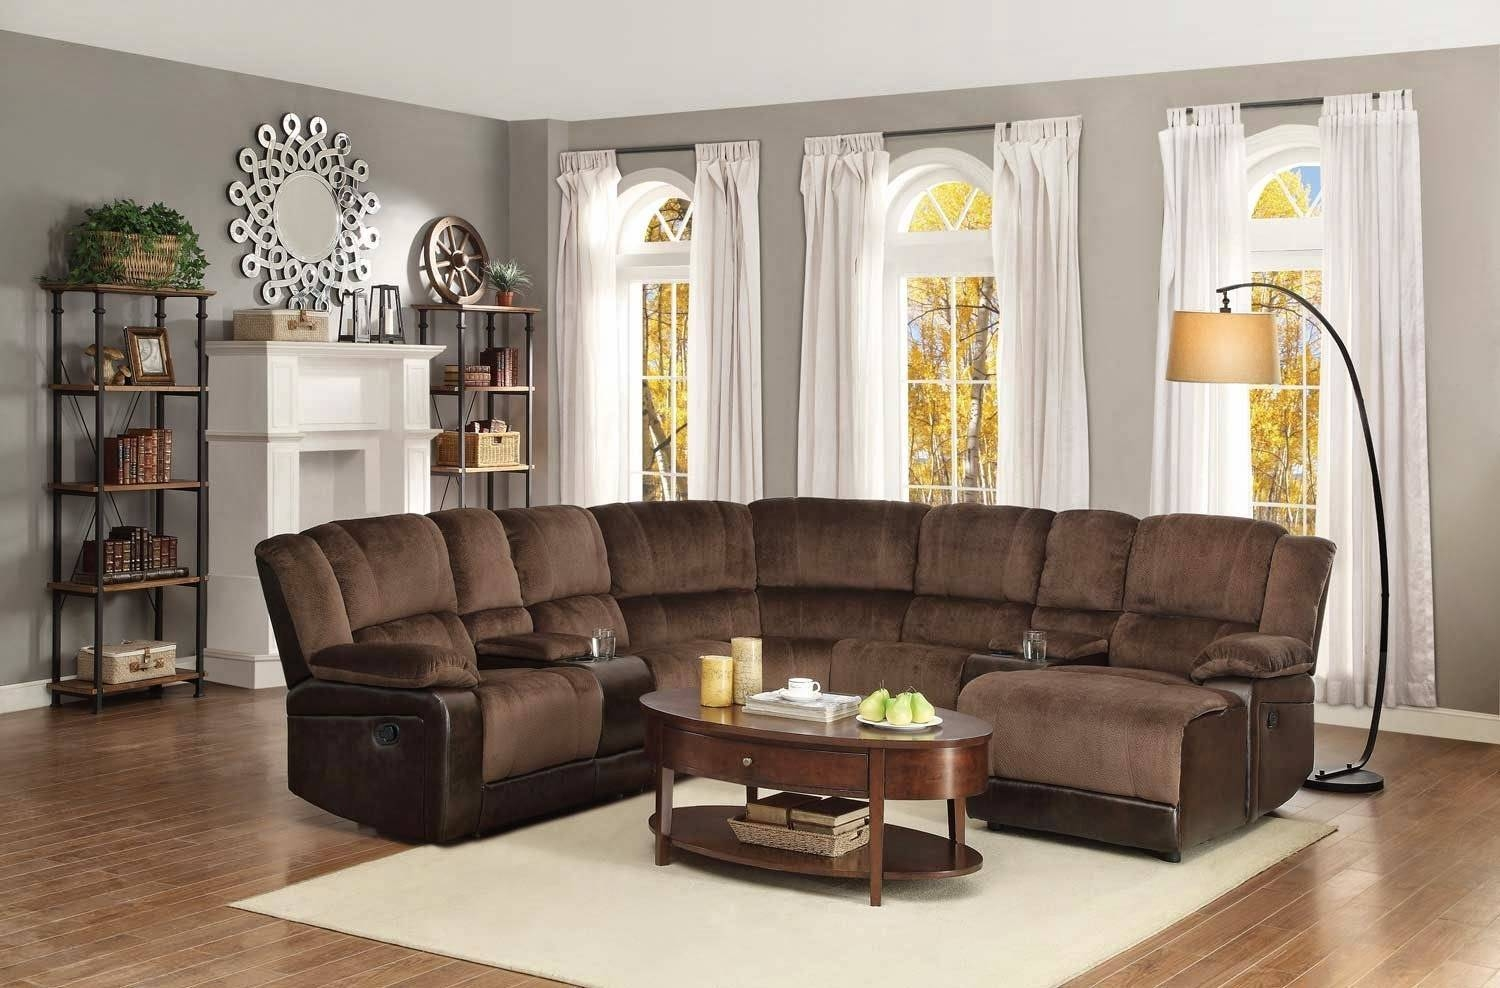 Appealing Curved Sectional Sofa With Recliner 26 With Additional within Bisectional Sofa (Image 2 of 30)